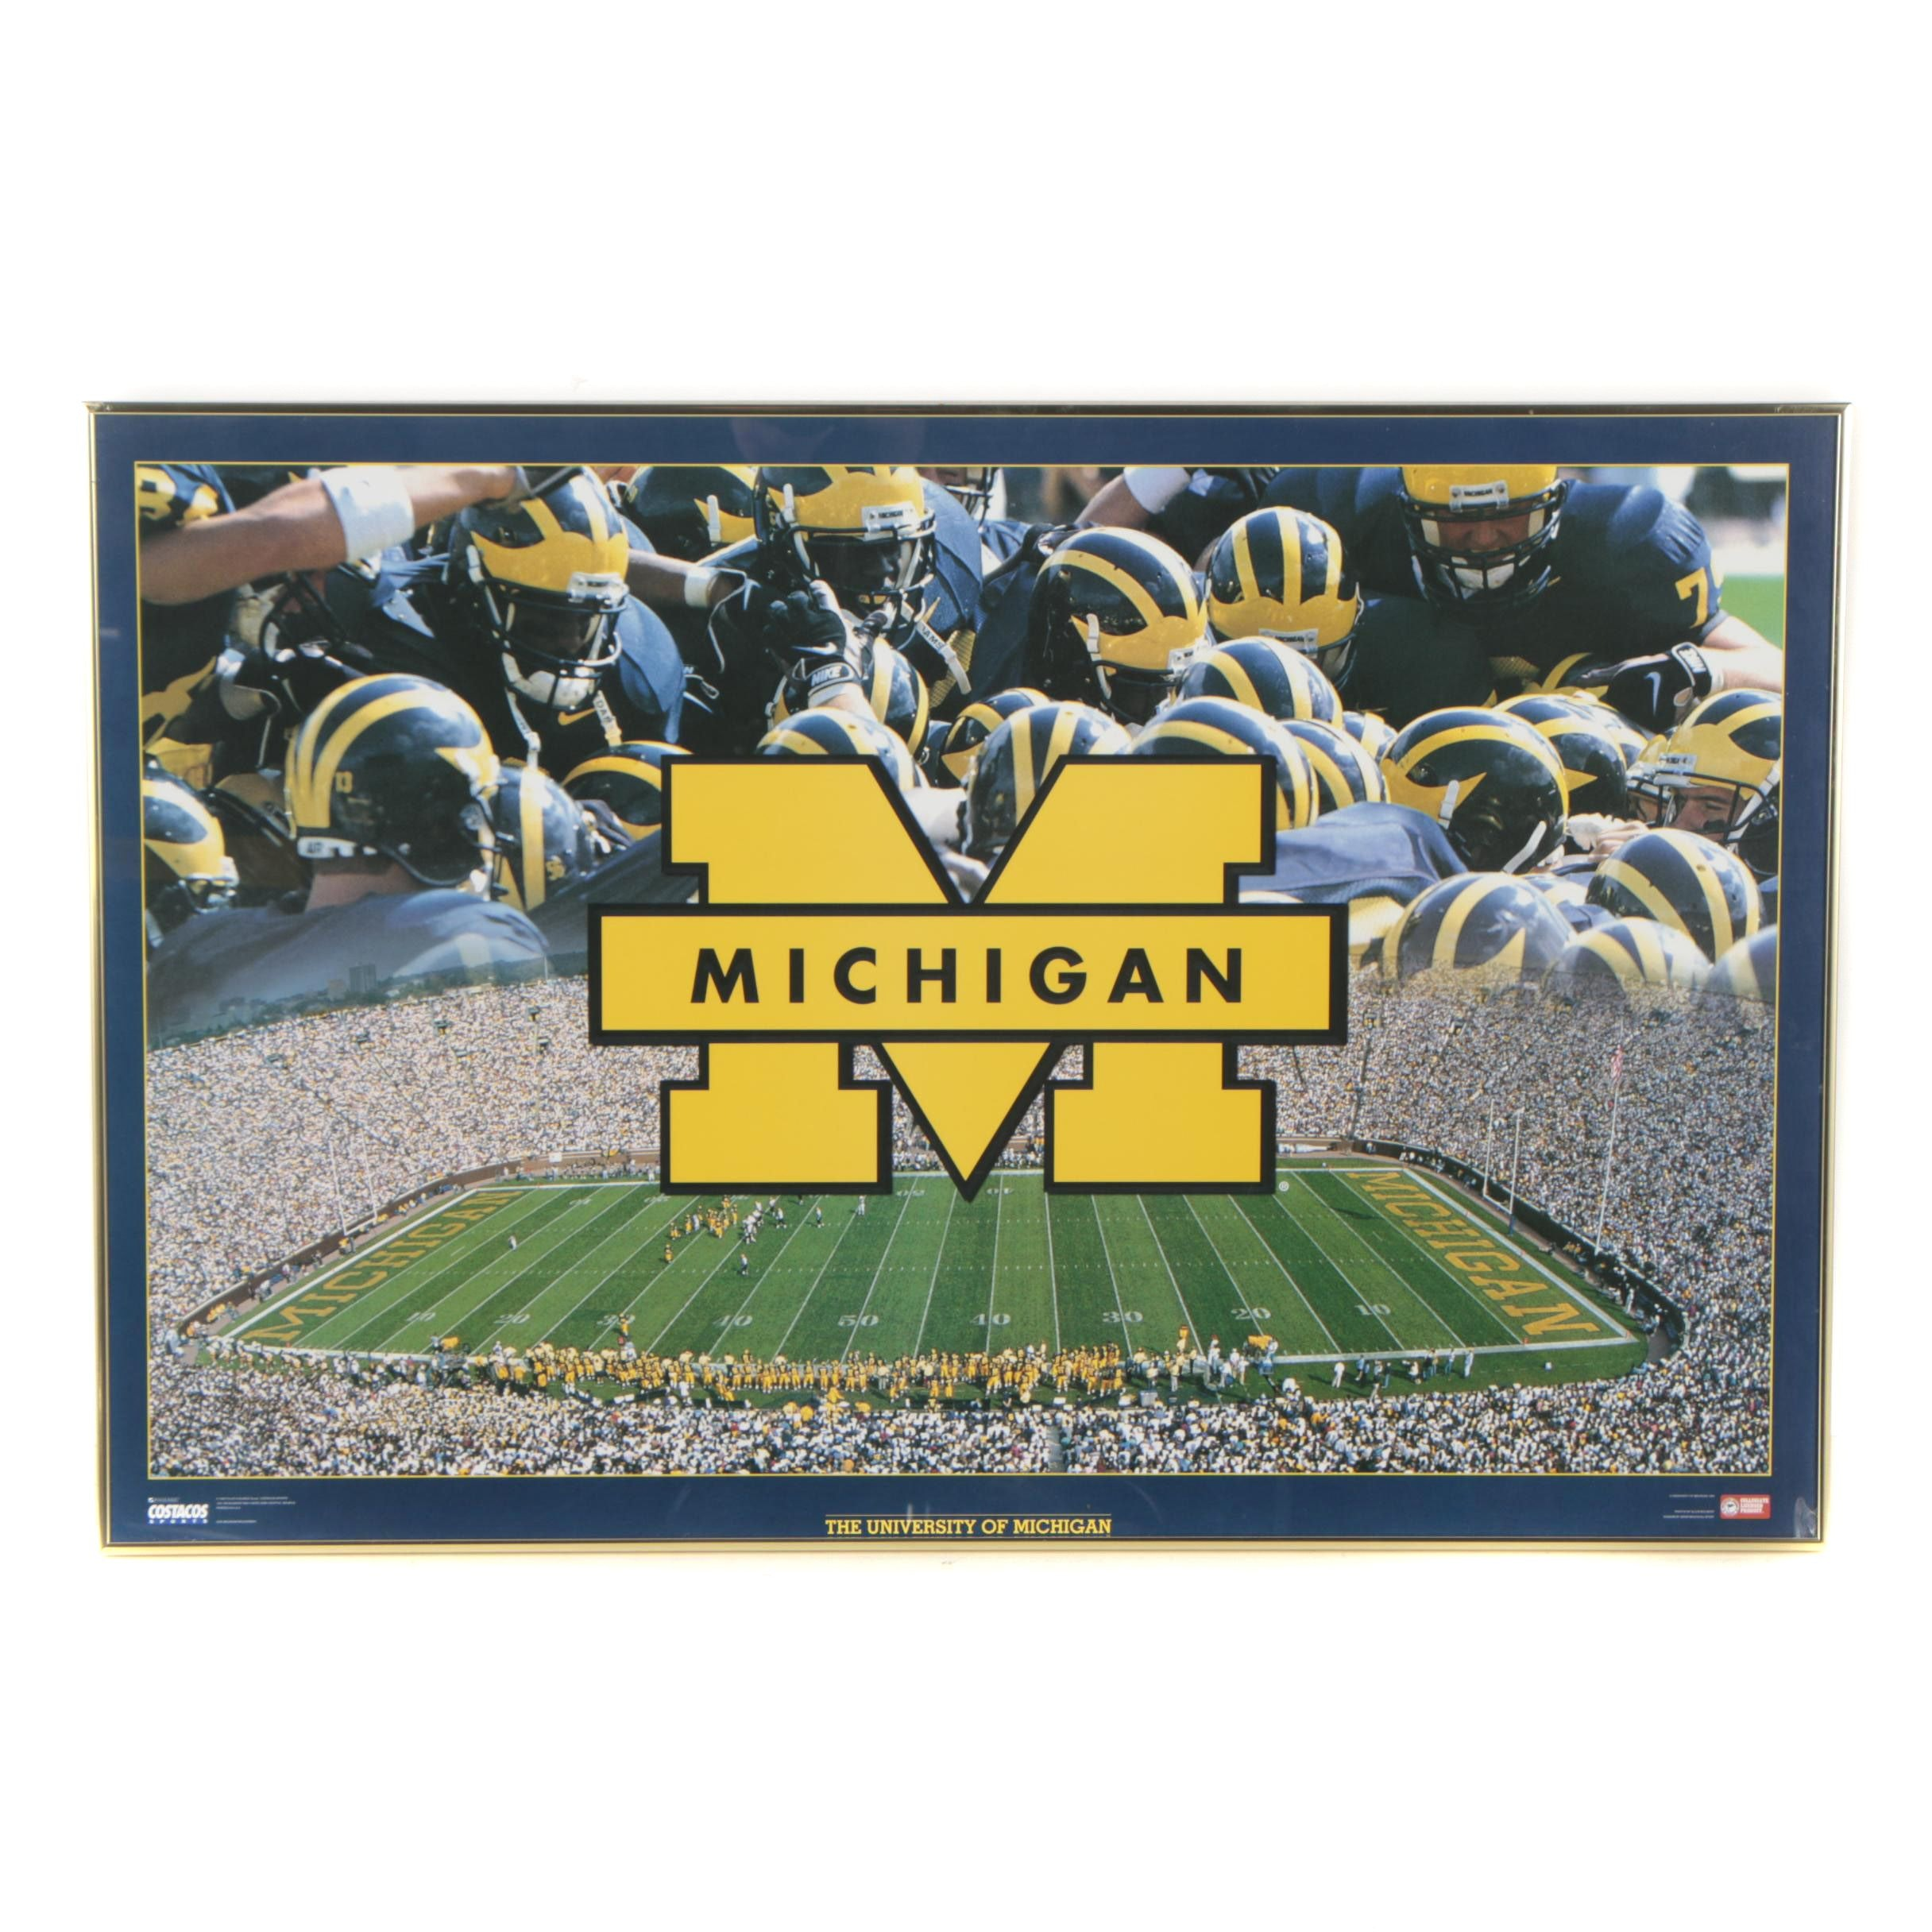 Offset Lithograph After Costacos Sports University of Michigan Poster